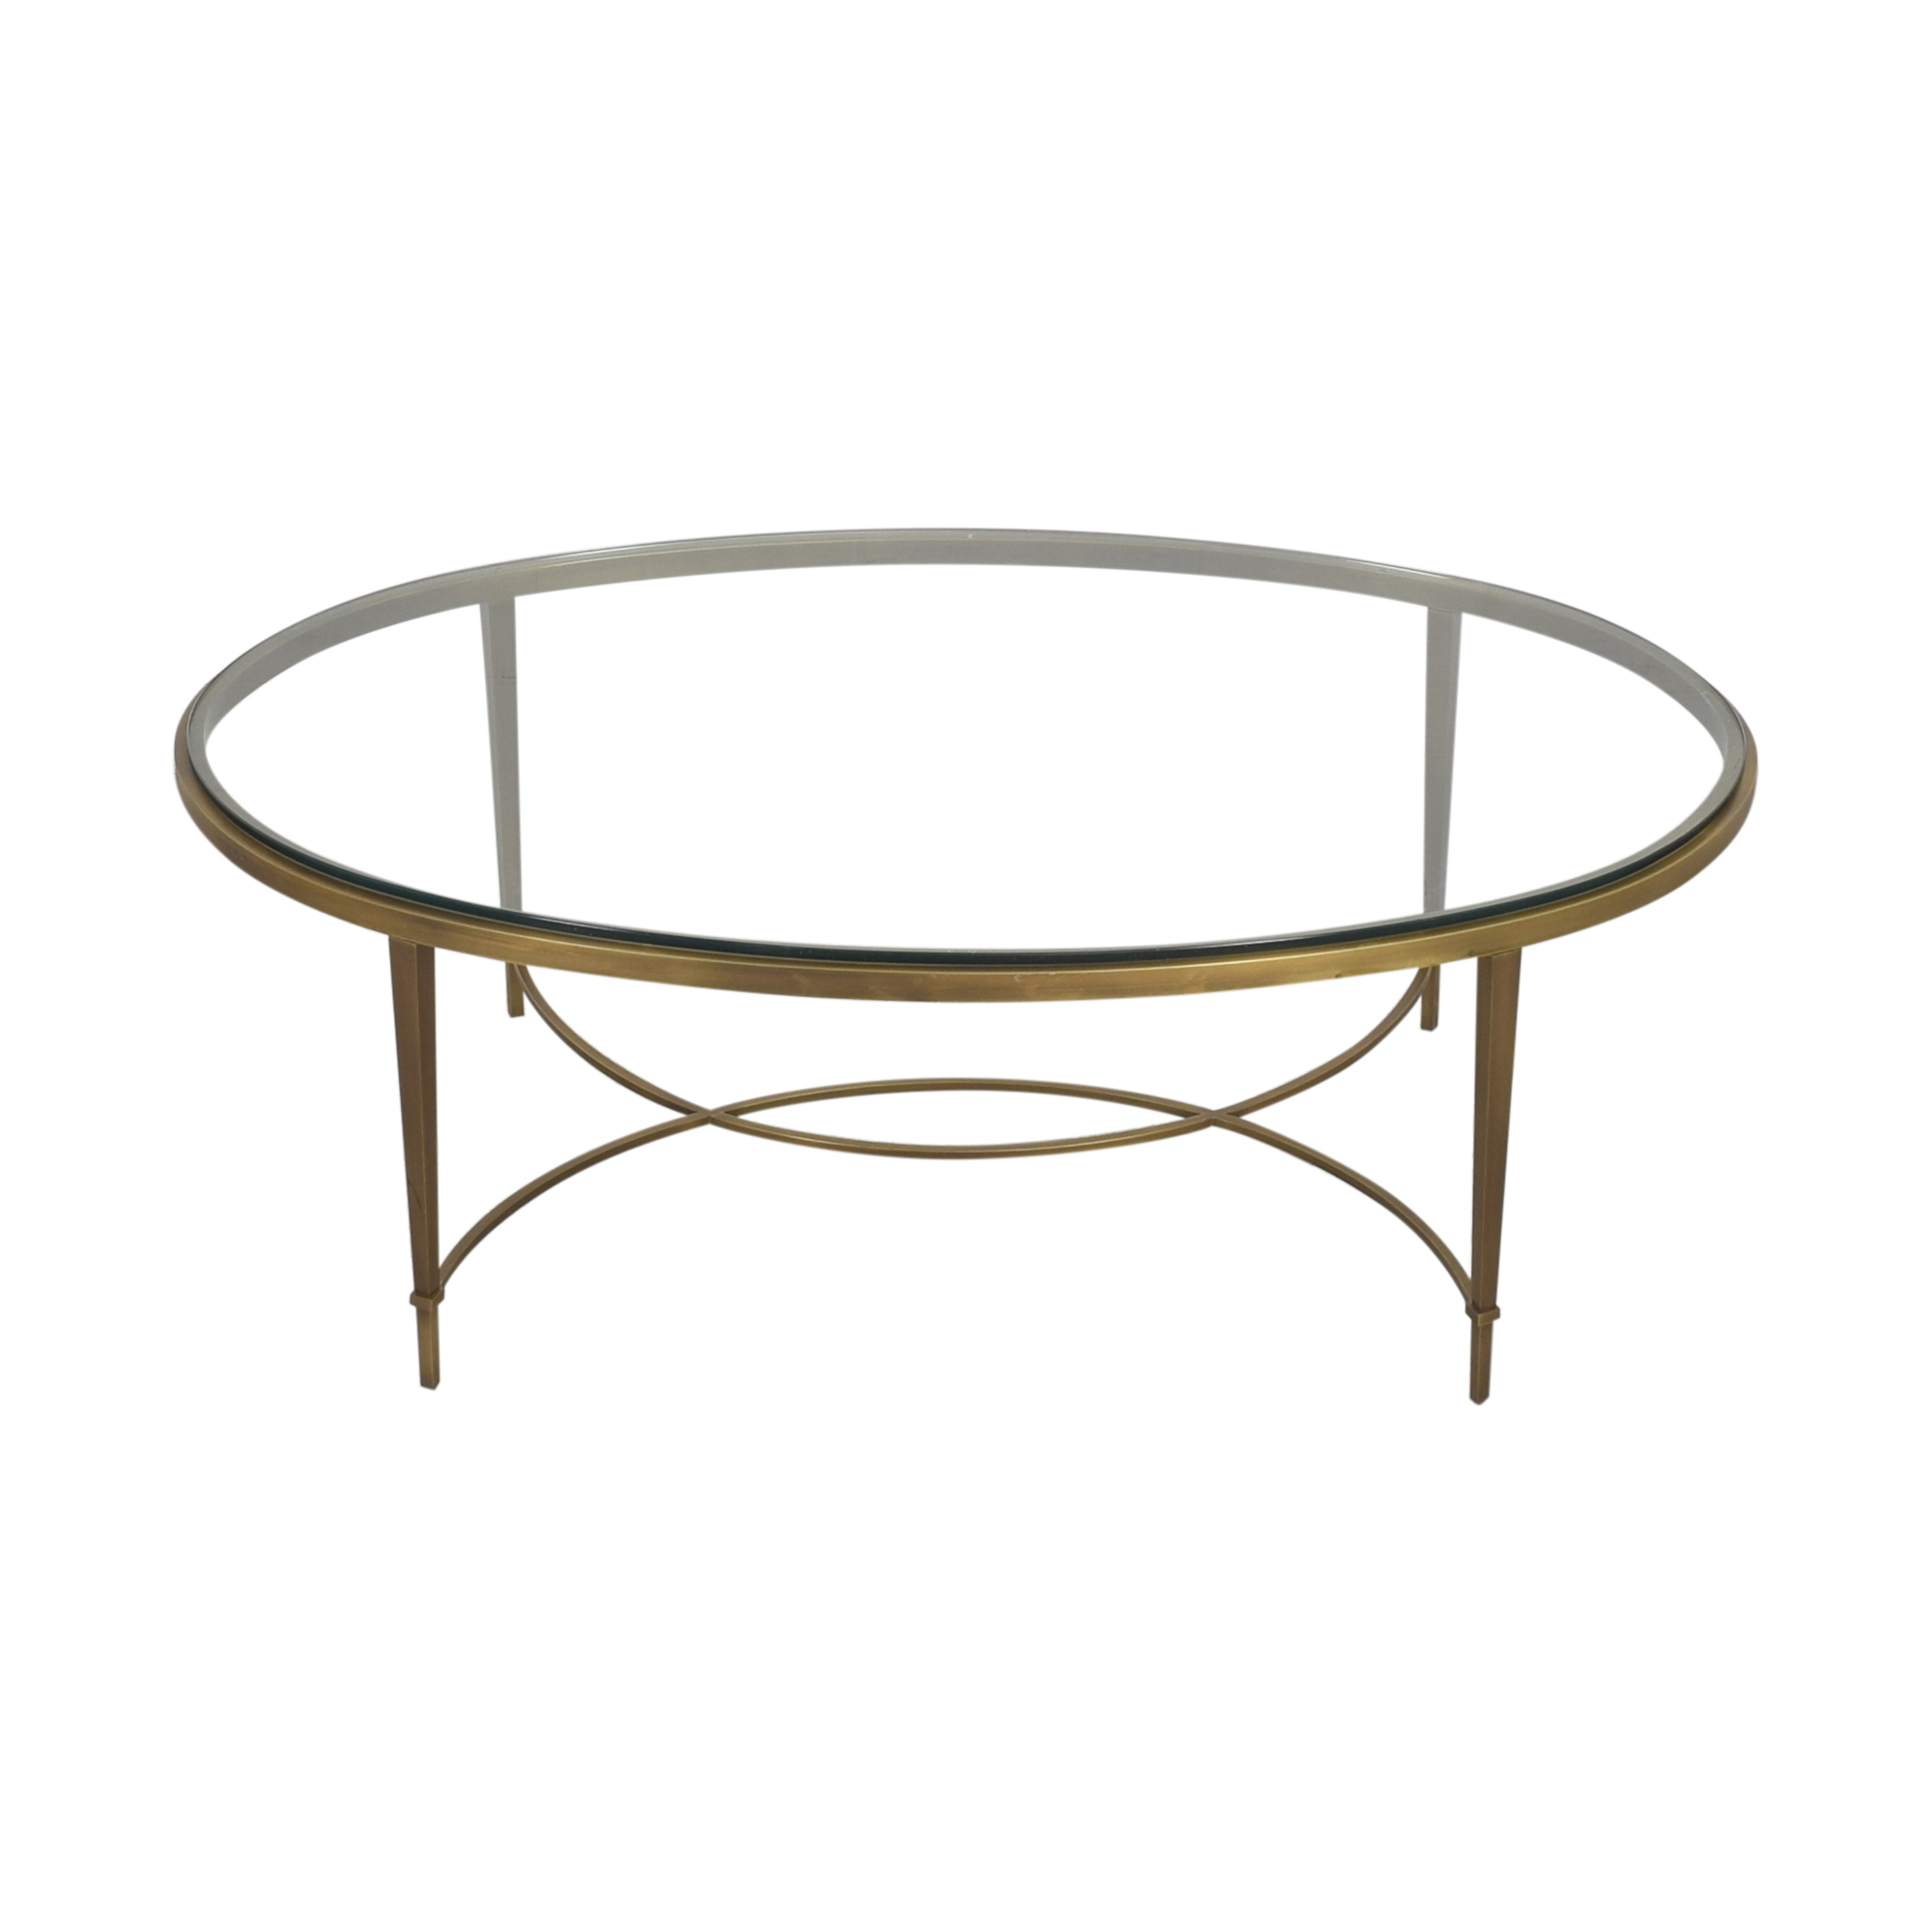 Baker Furniture Baker Furniture Oval Coffee Table discount